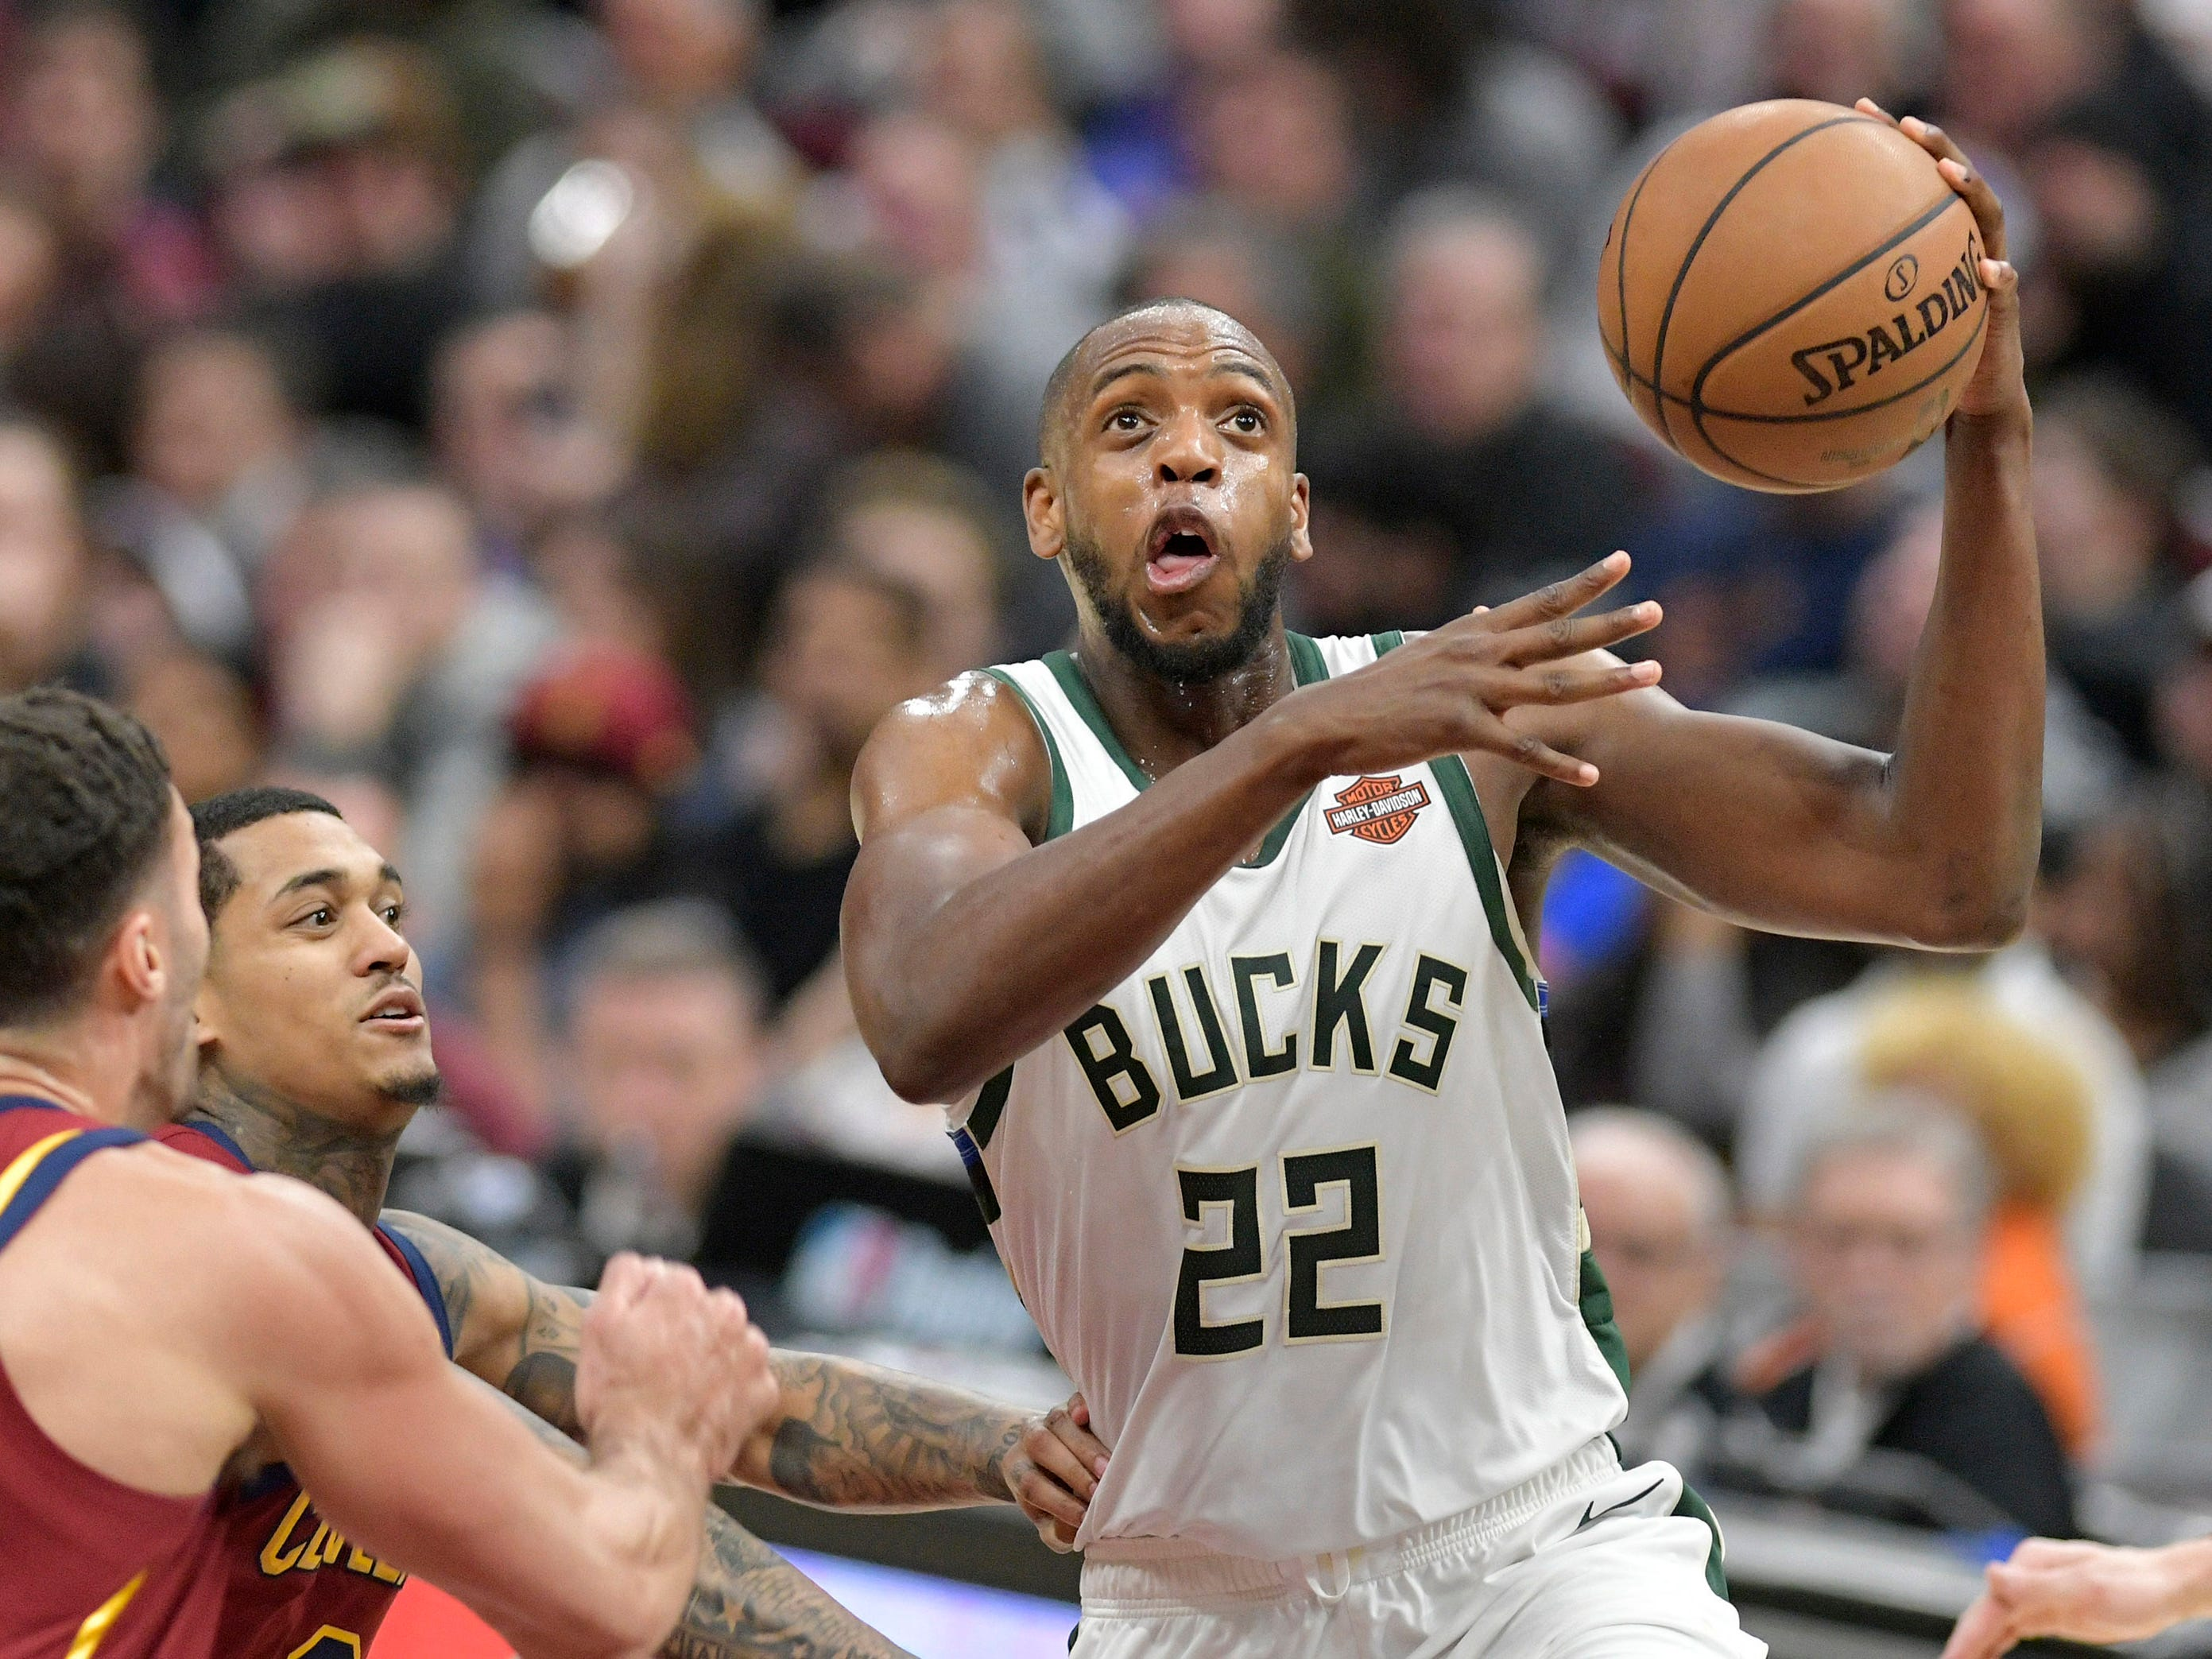 Bucks forward Khris Middleton (22) gets ready to go up for a shot against Larry Nance Jr. (left) and Jordan Clarkson of the Cavs in the third quarter.